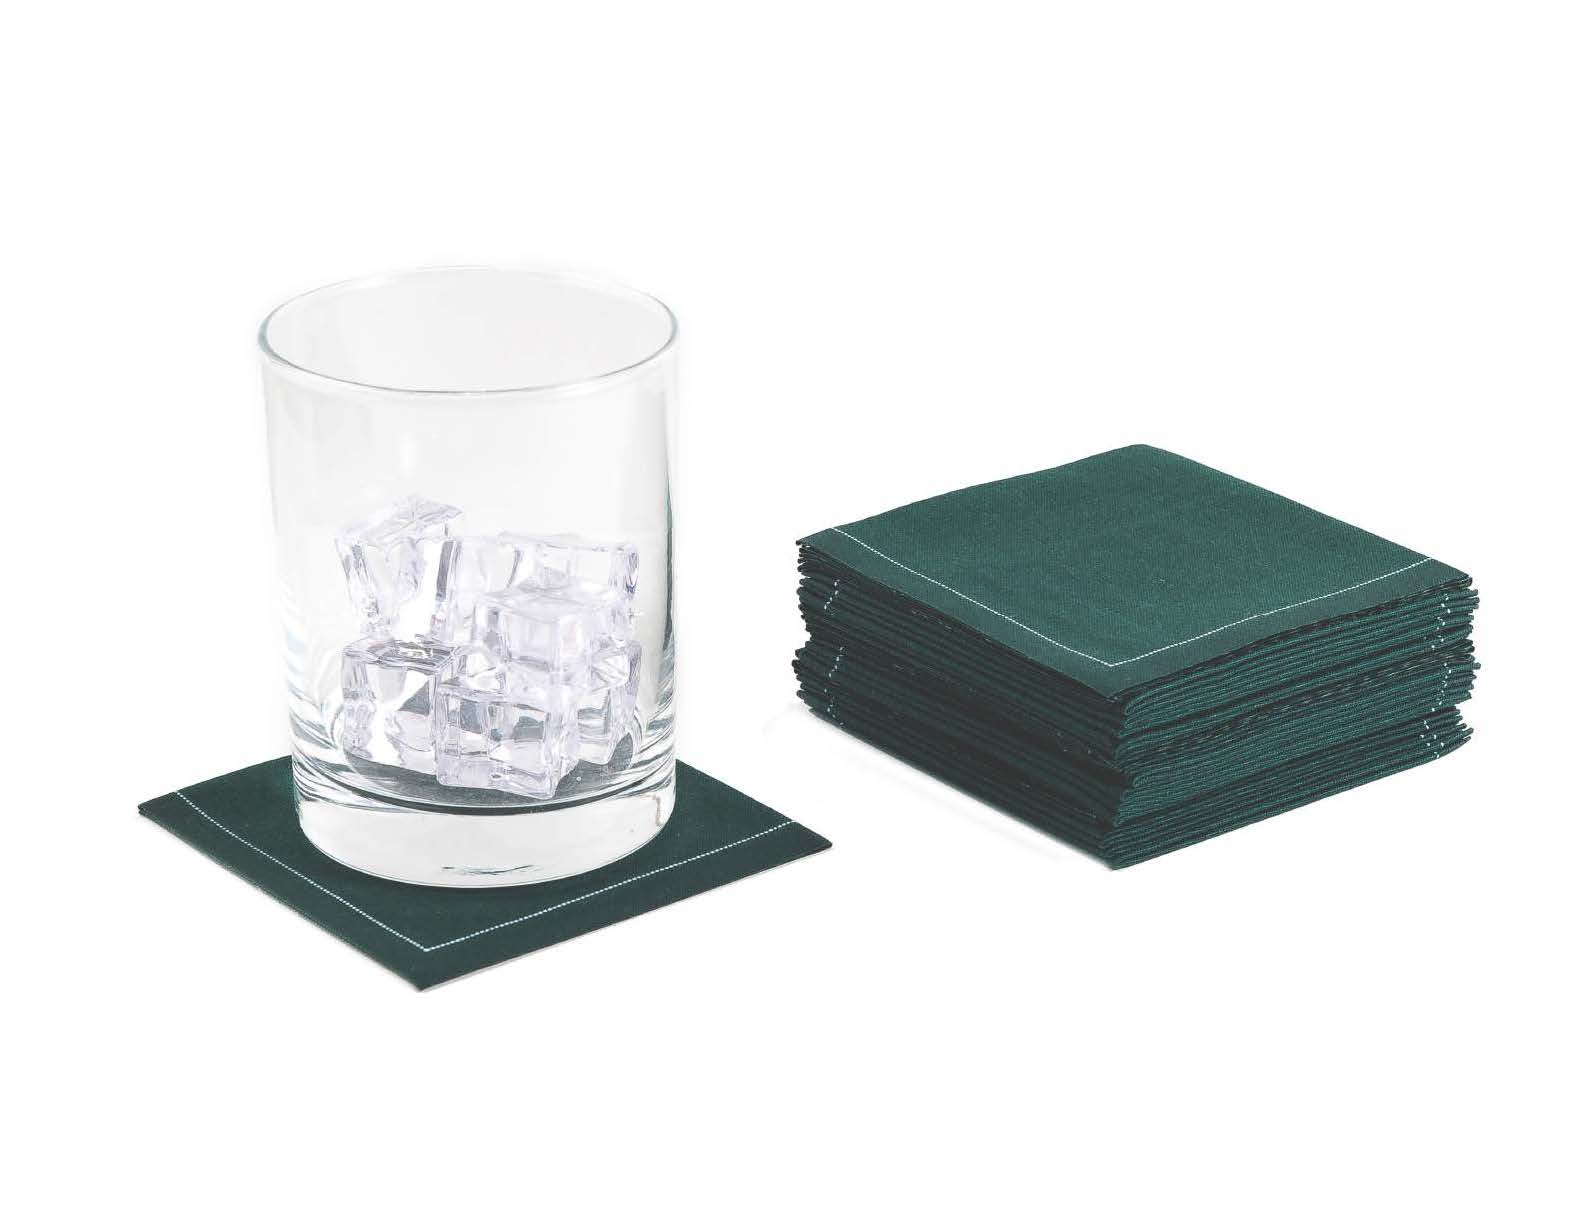 "British Racing Green Cotton 1/4 Fold Cocktail (140 GSM) - 8"" x 8"" (folded 4"" x 4"") - 600 units"